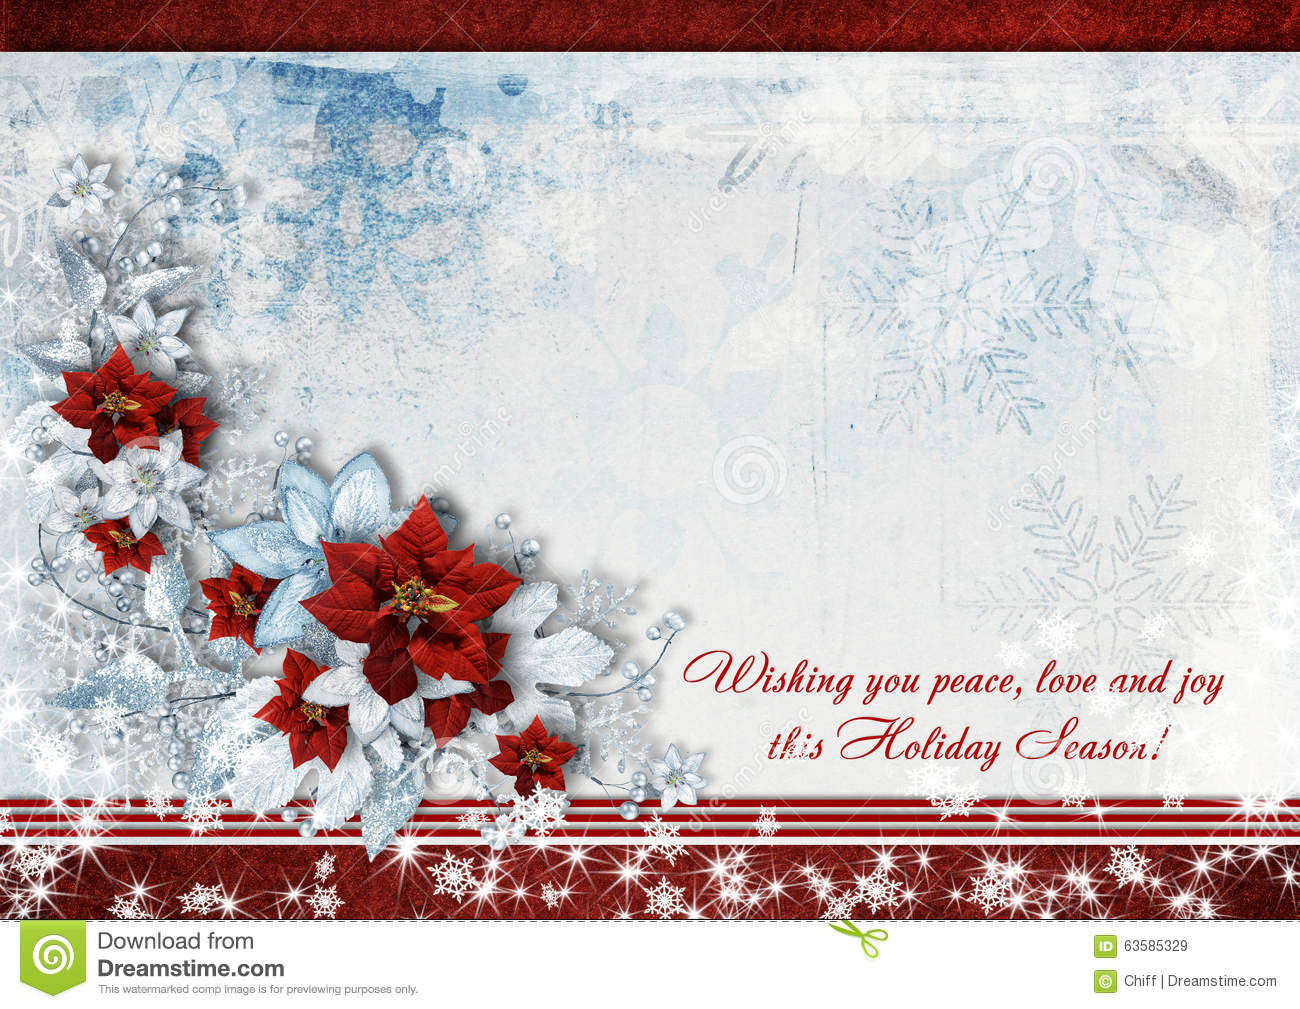 Christmas Greeting Card With The Wishes And Poinsettia. Stock ...